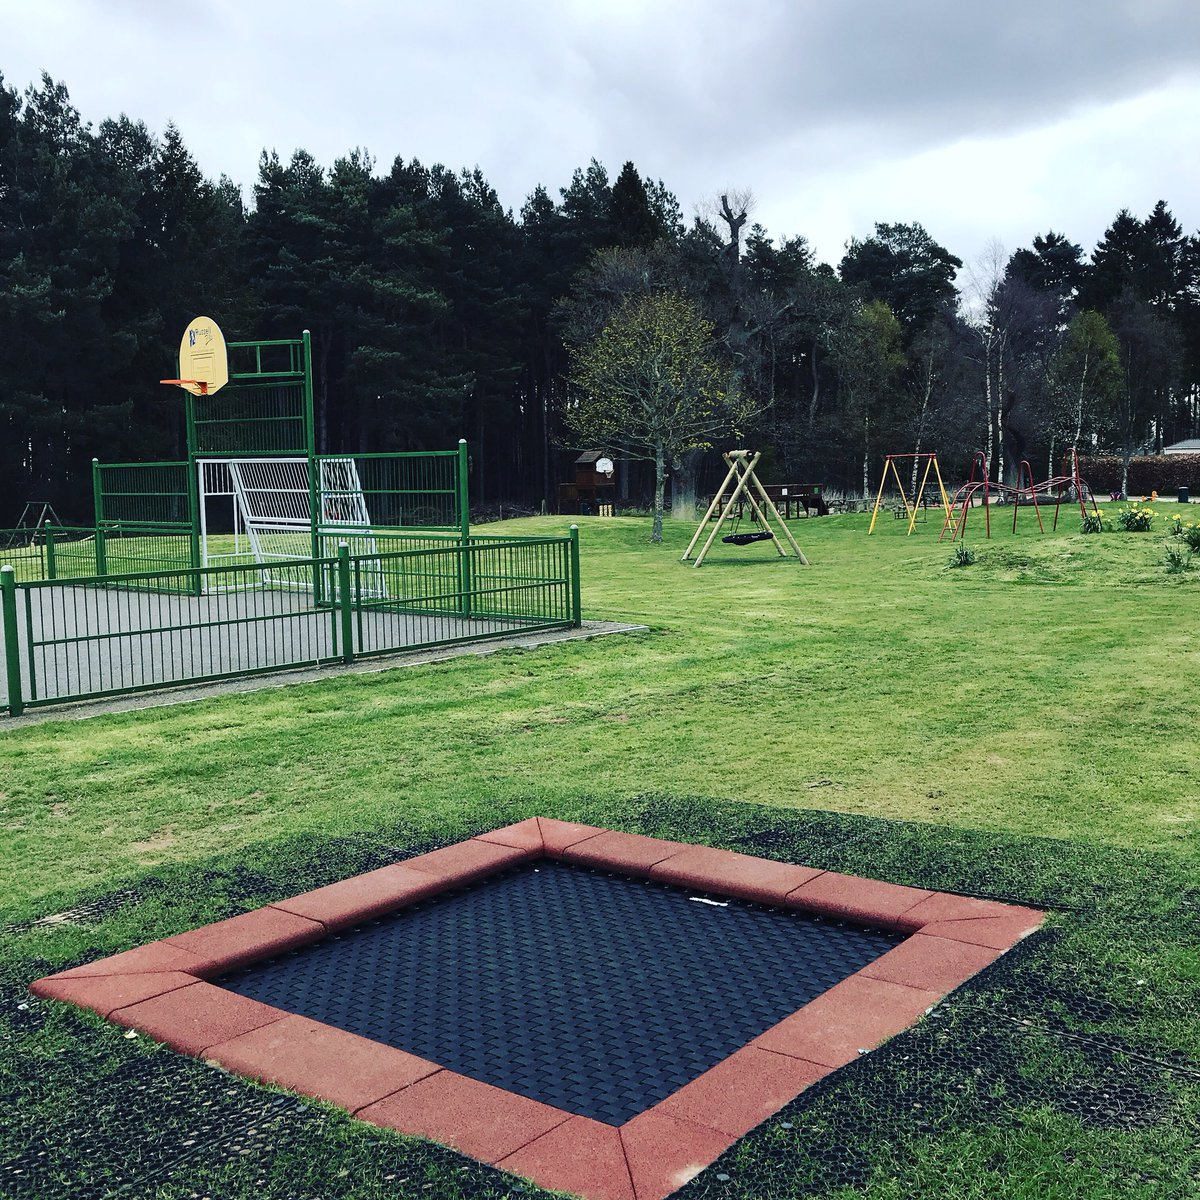 Image for Has anyone tried the new trampoline in the play area yet? I have ???? ???? https://t.co/WaPzigp4dG